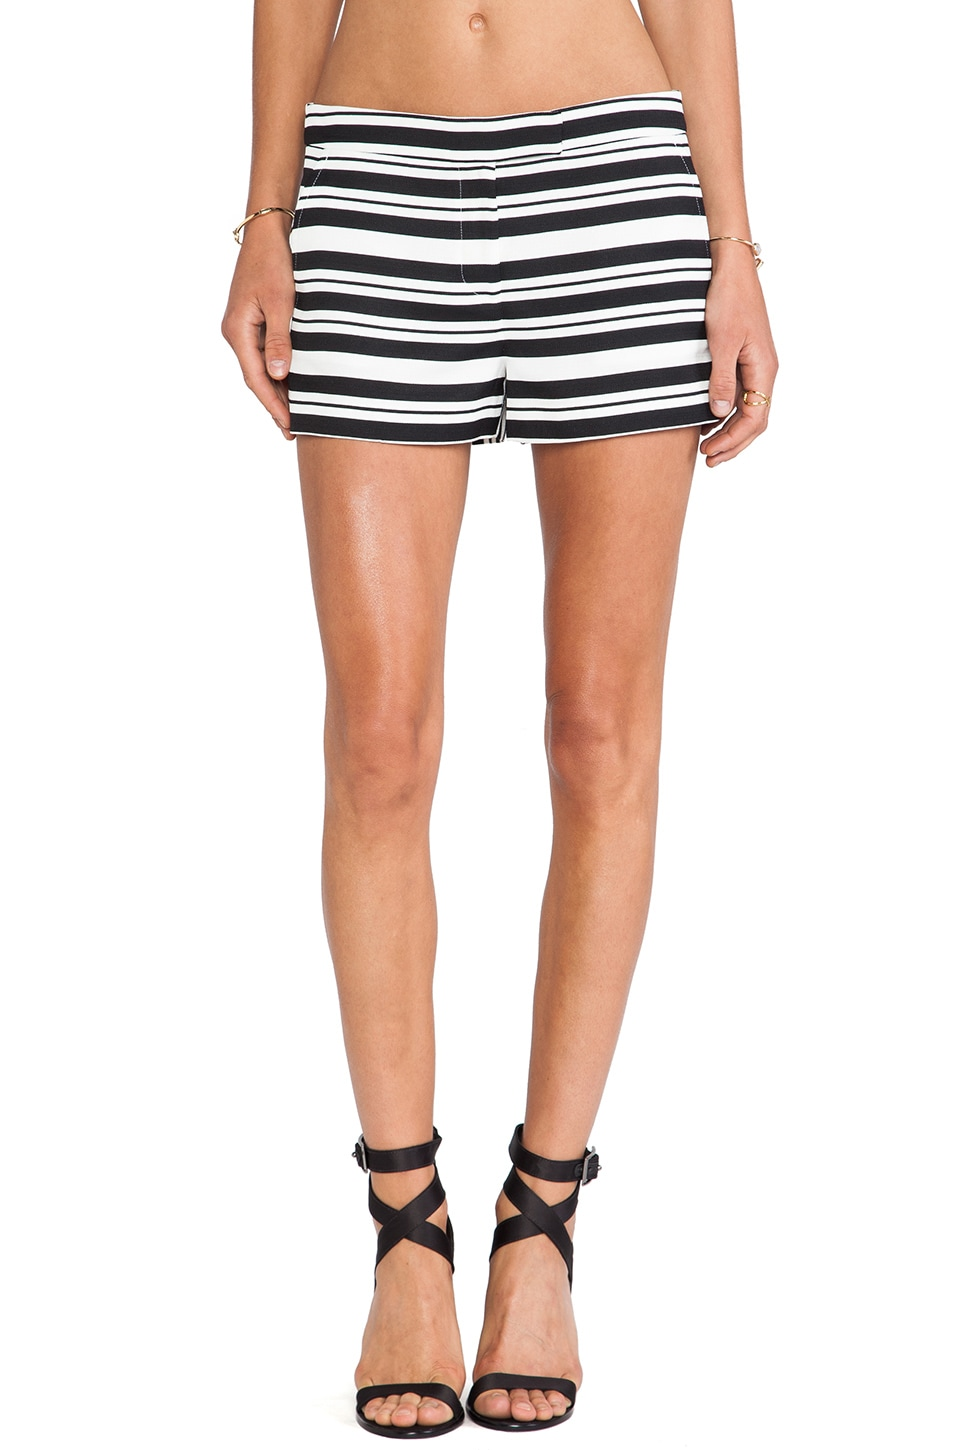 Tibi Sumer Stripe Short in Black Multi